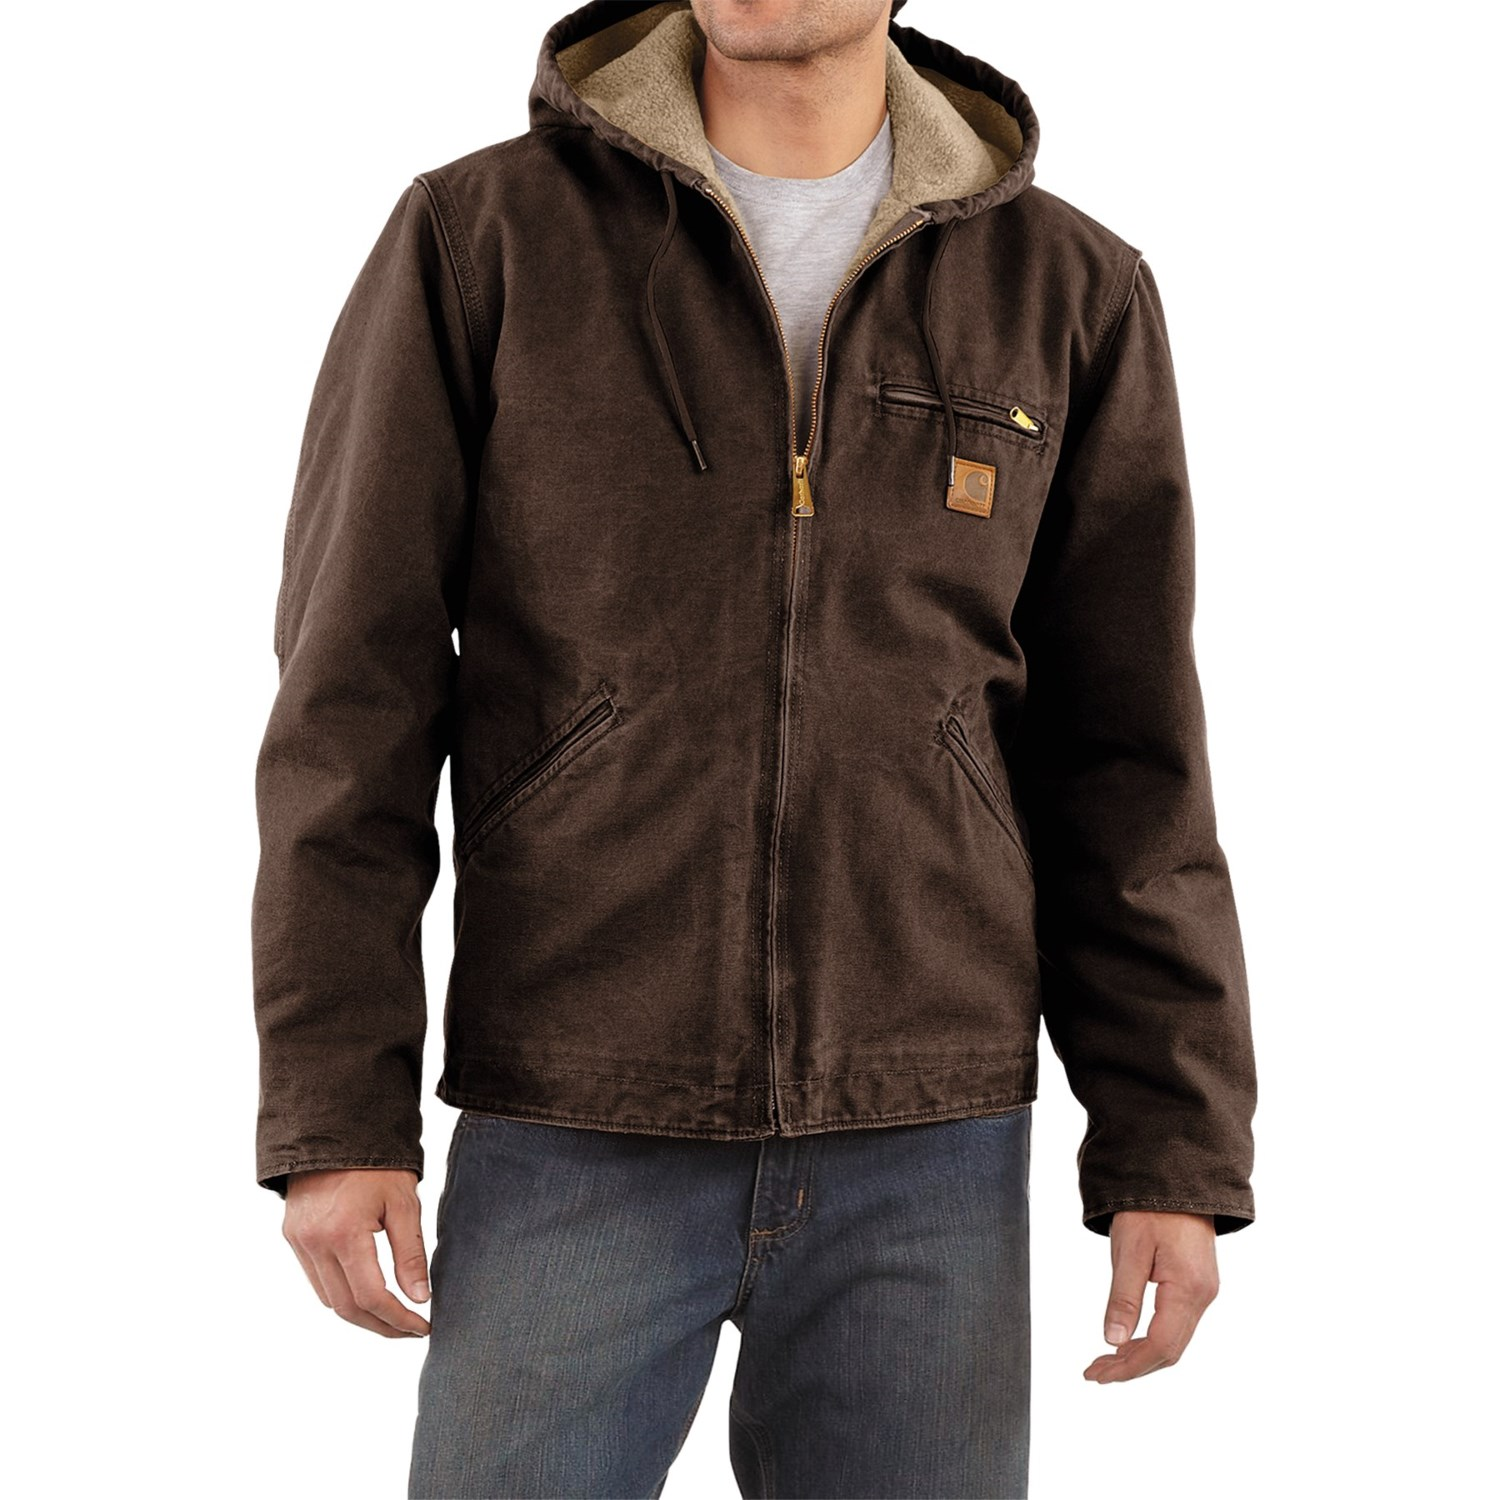 generic Men's Hoodie Zip Up Jacket Sherpa Lined with Quilted Sleeves Sweater. Sold by Altatac. $ $ Alta Men's Hoodie Zip Up Jacket Sherpa Lined Sweater. Sold by Altatac. $ $ Club Room Mens Sherpa Lined Plaid Shirt Jacket. Sold by Tags Weekly. $ $